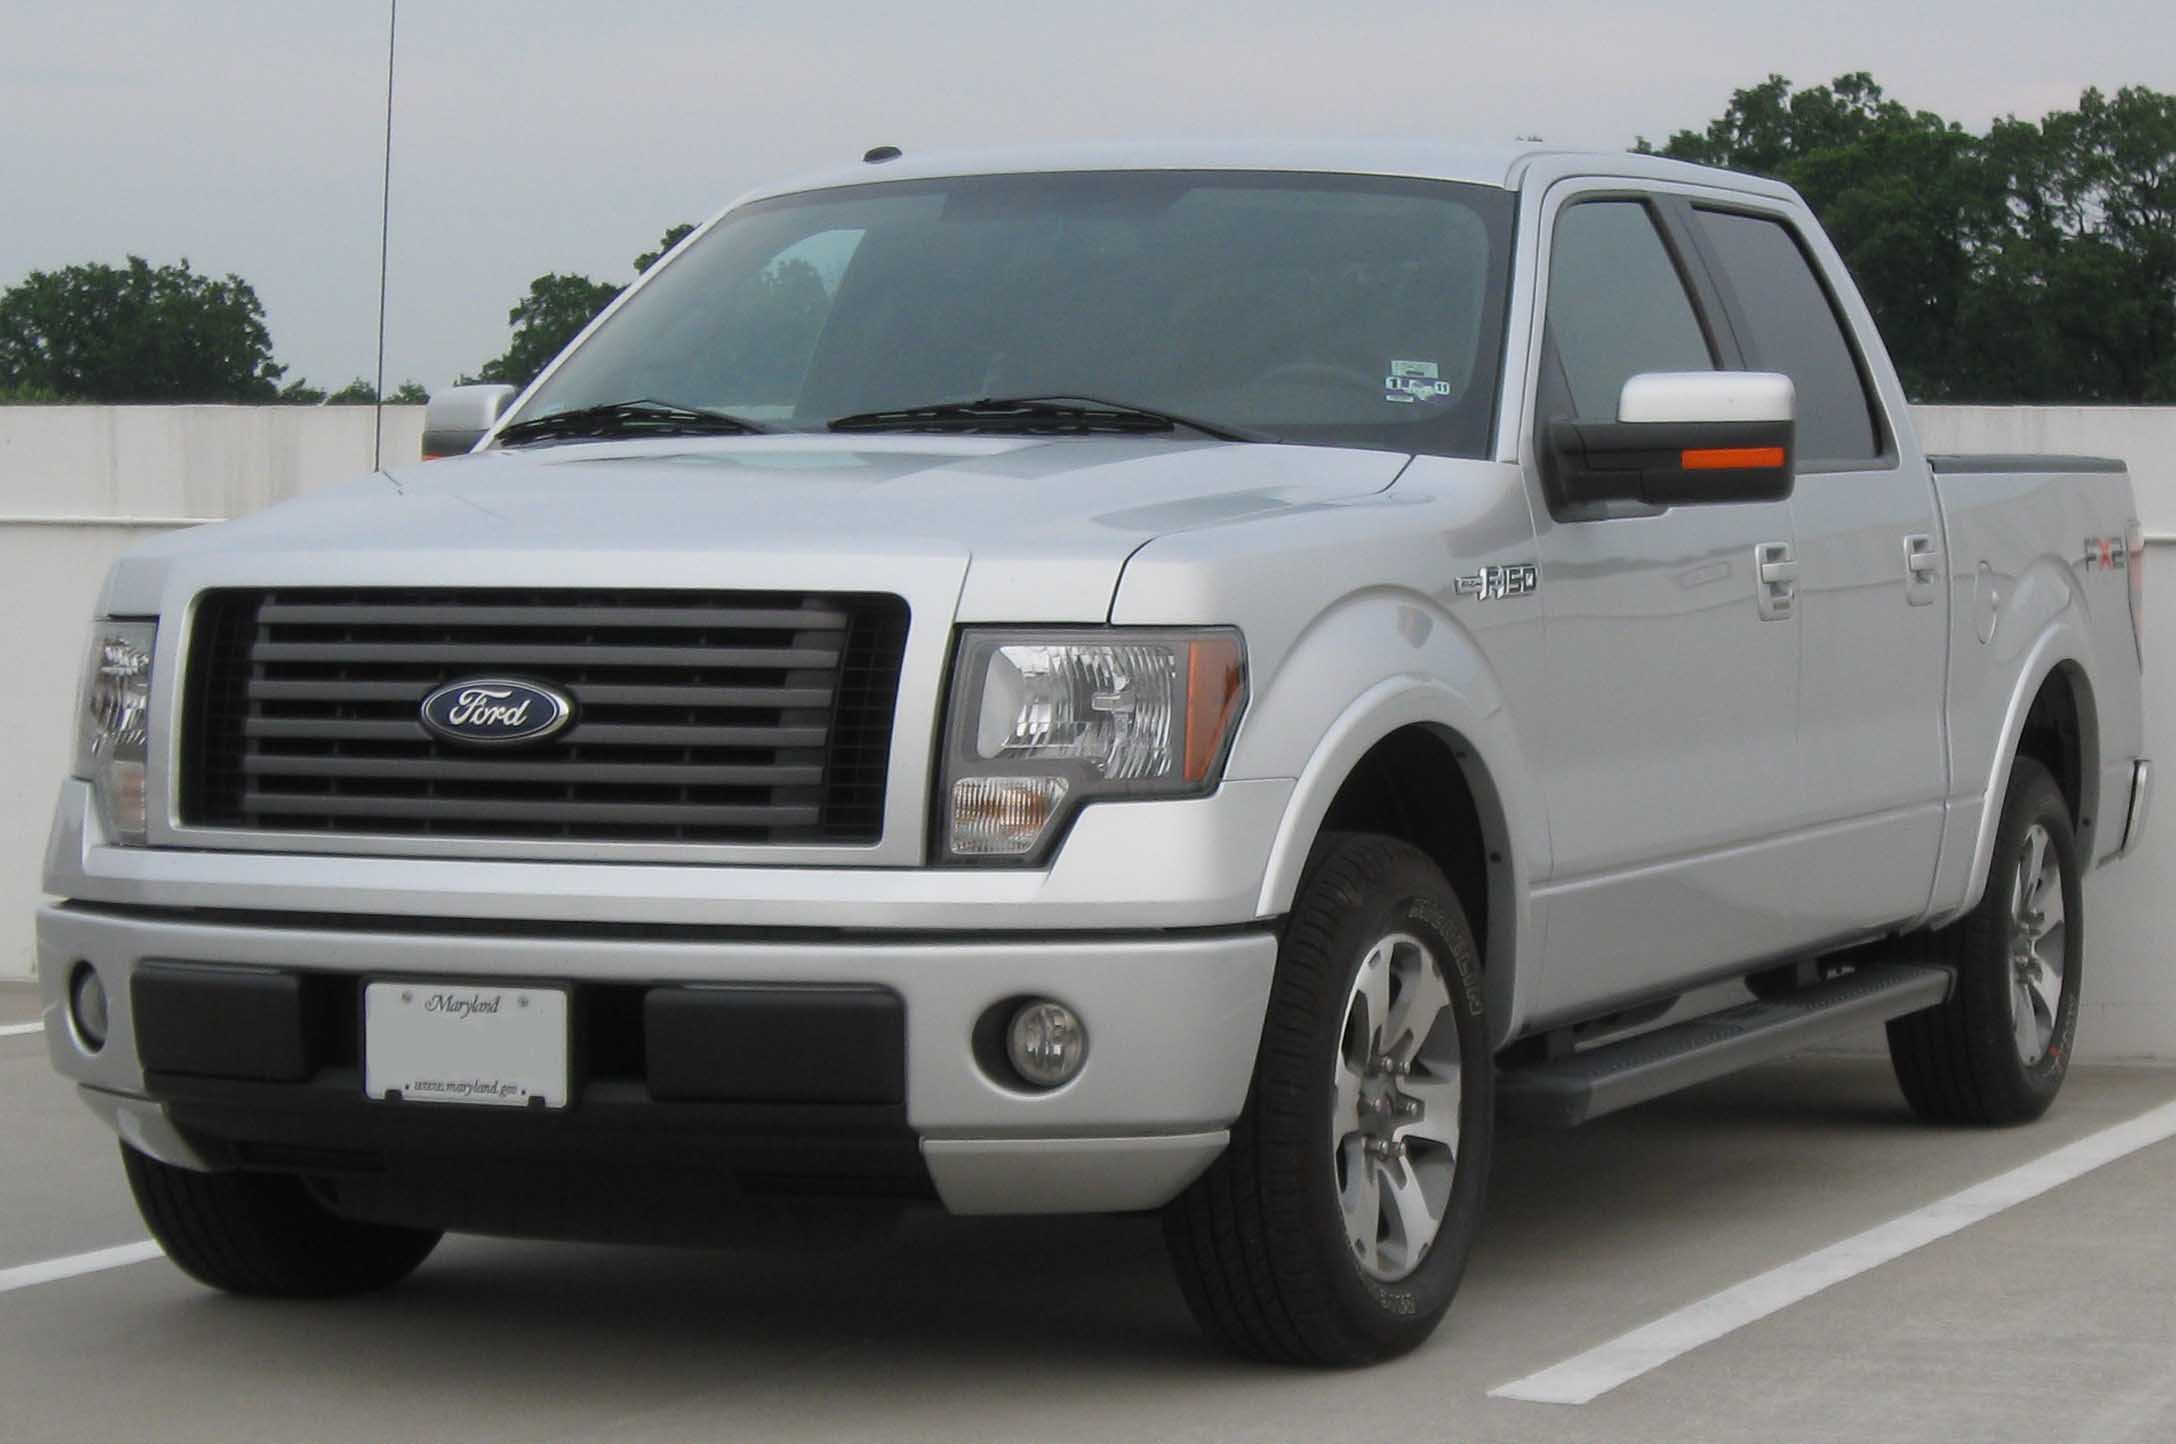 2010 ford f 150 image 20